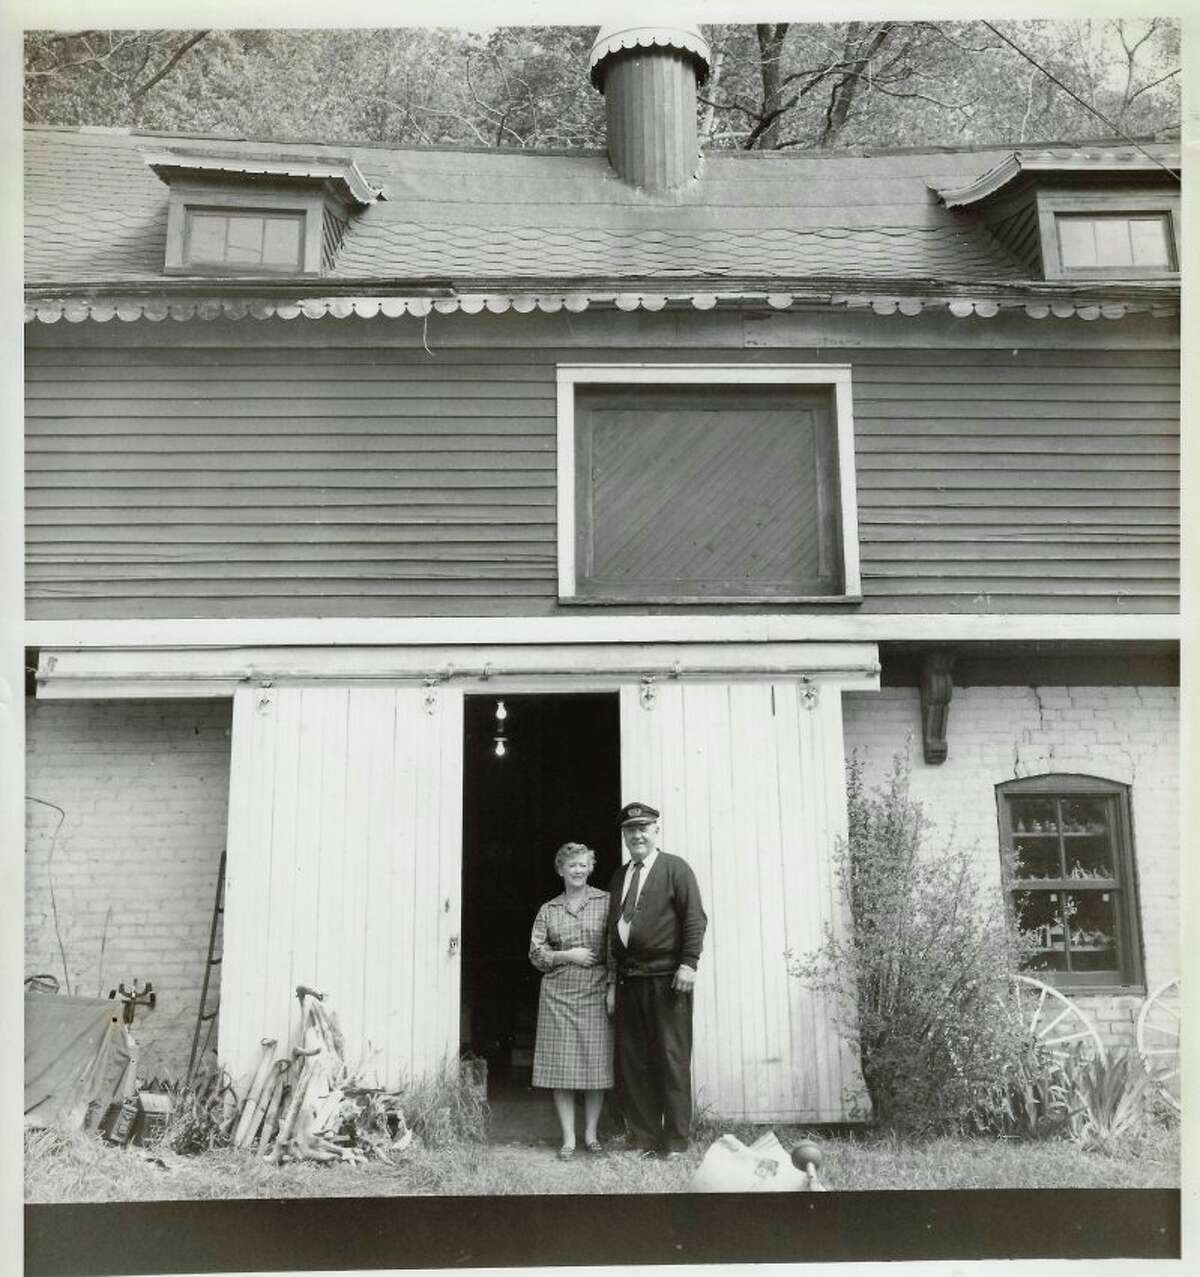 Captain Arthur Frederickson,one of the longest serving captains of the carferries,and his wife, Lucy, stand in front of their barn in Frankfort. (Courtesy photo)